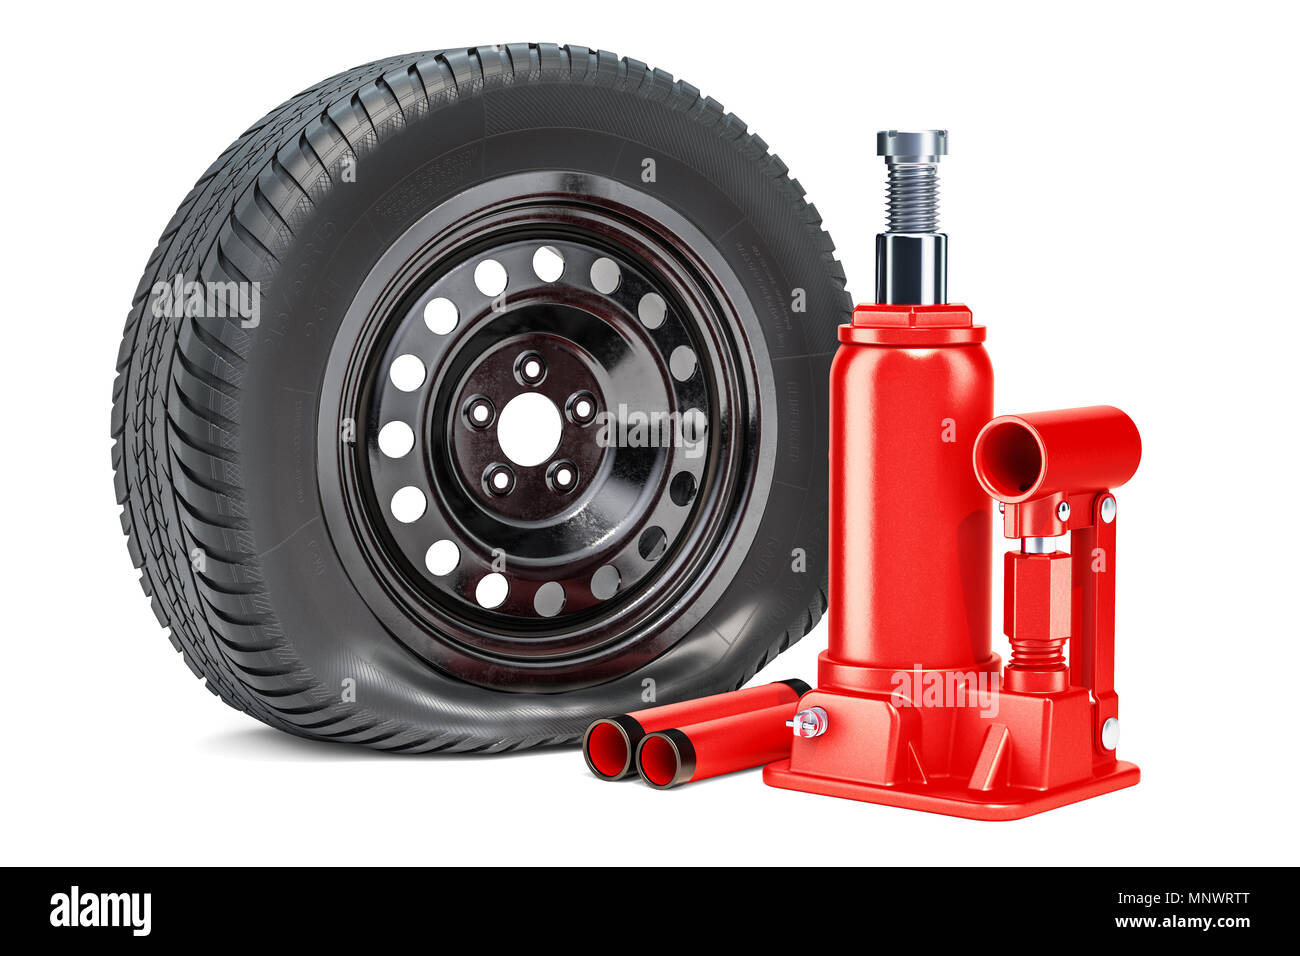 Blown Tyre Stock Photos & Blown Tyre Stock Images - Alamy